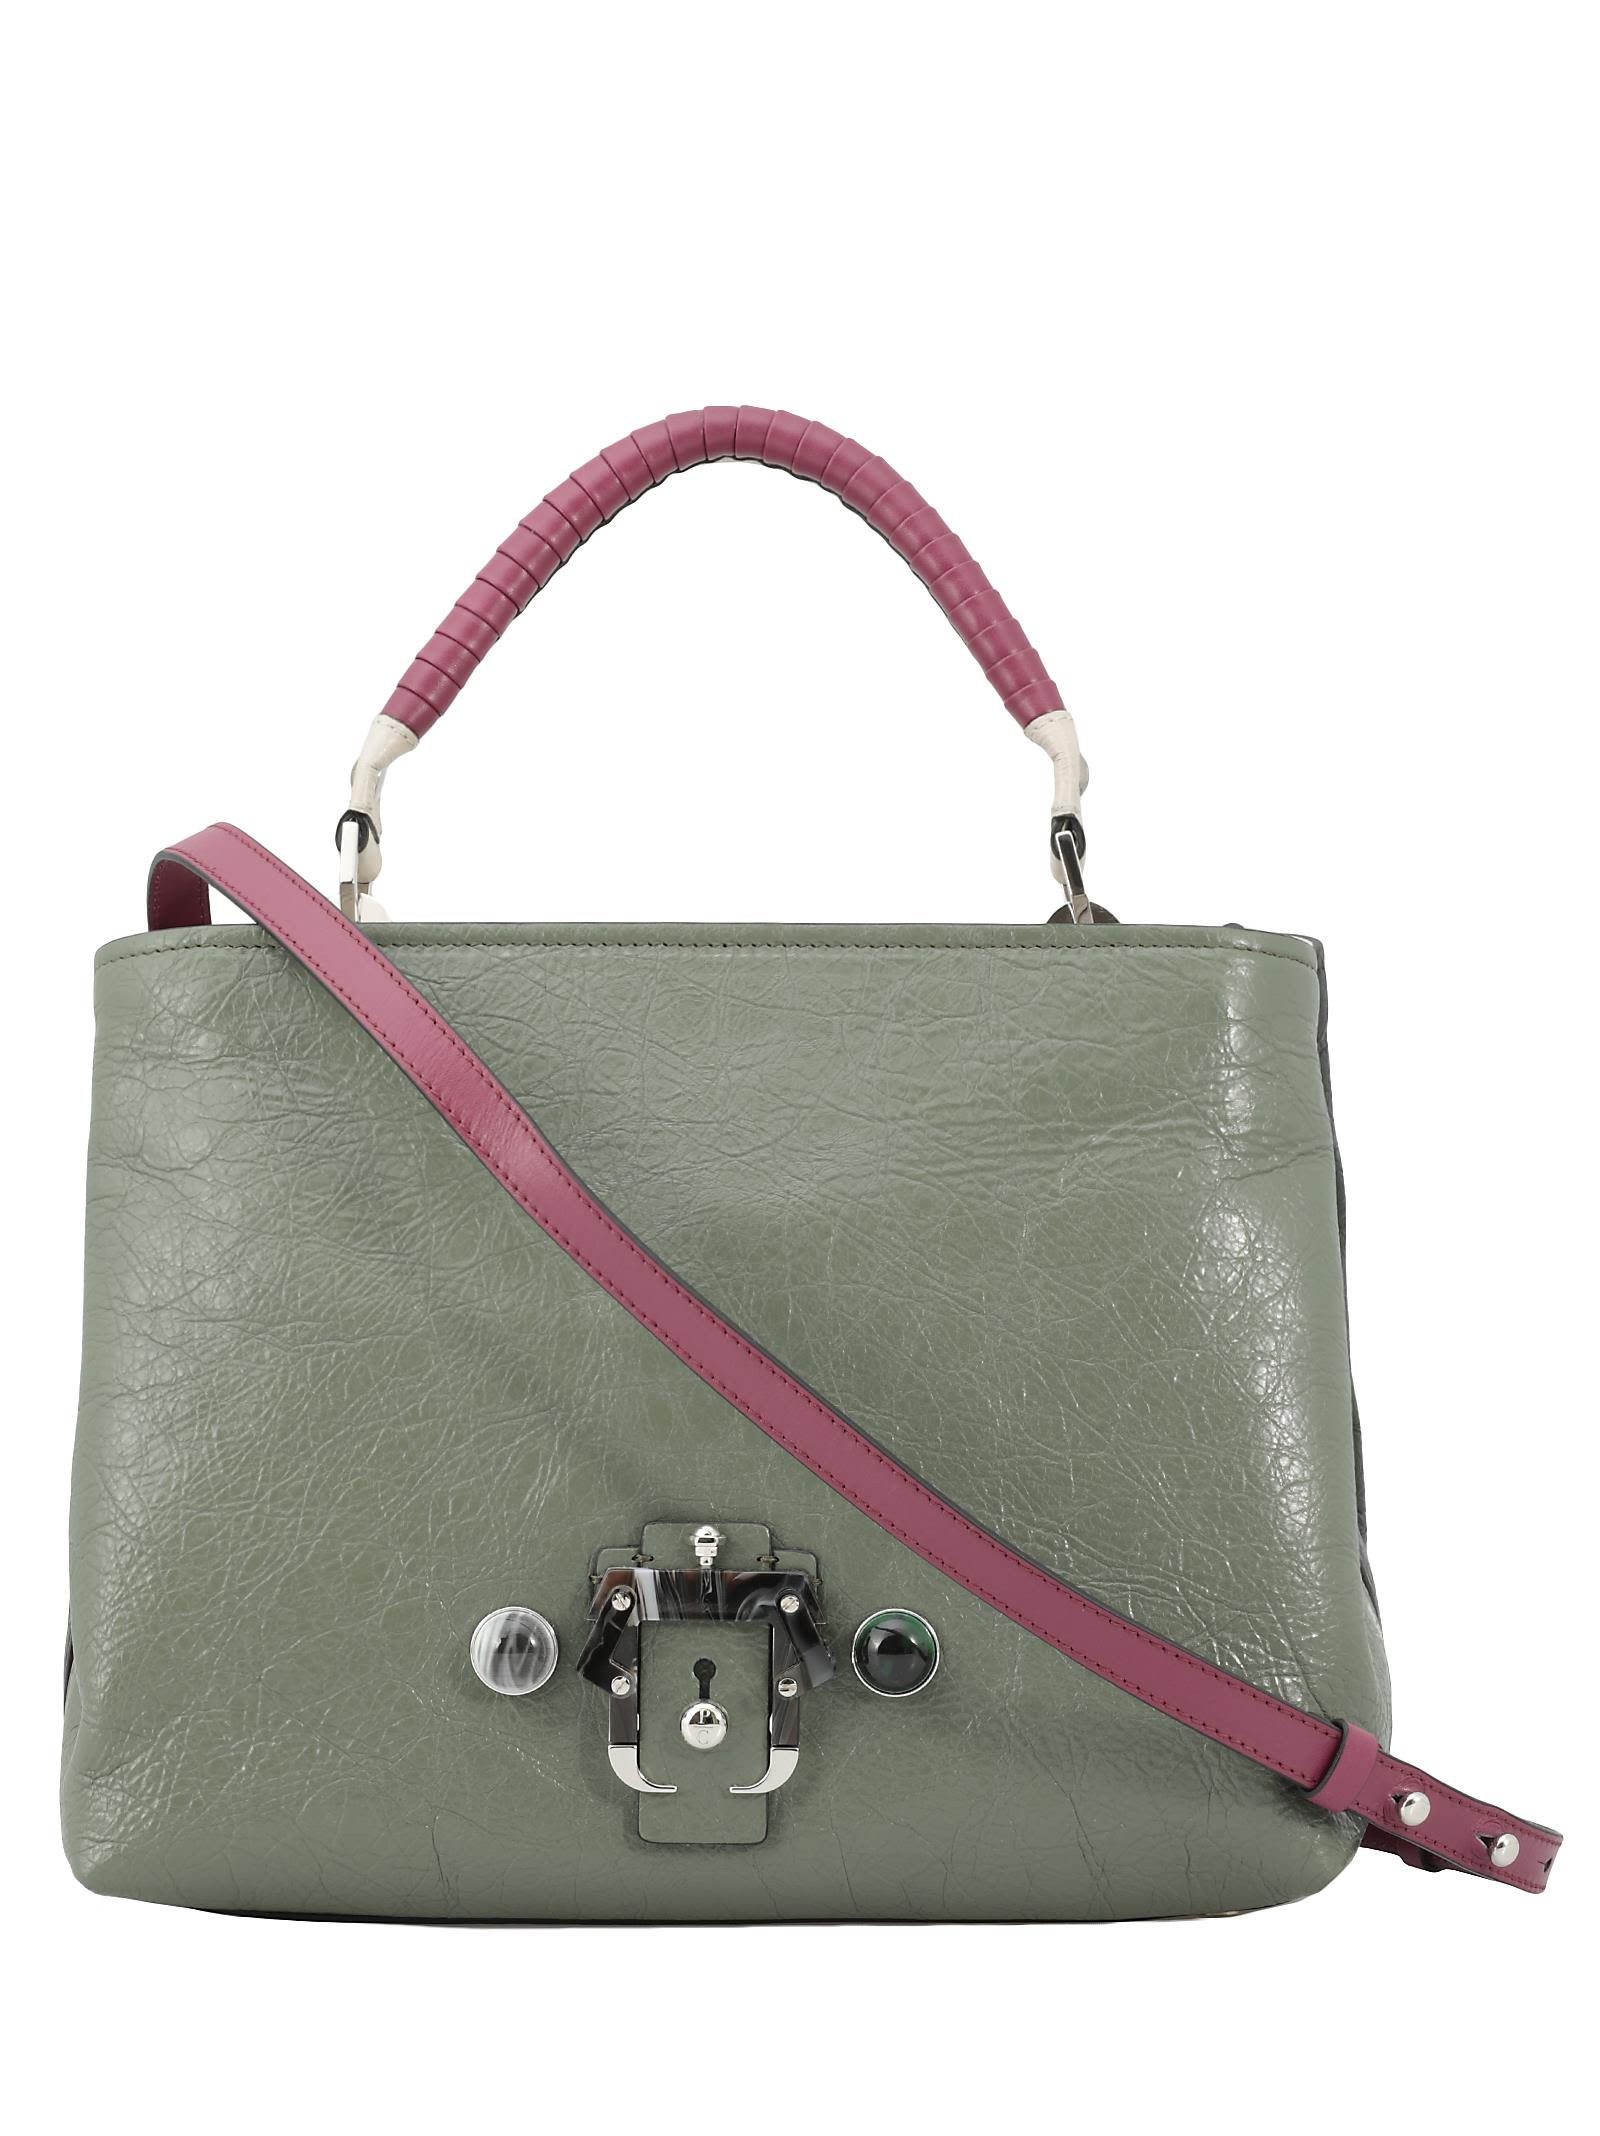 PAULA CADEMARTORI Mae Chic Crease Bag in Green